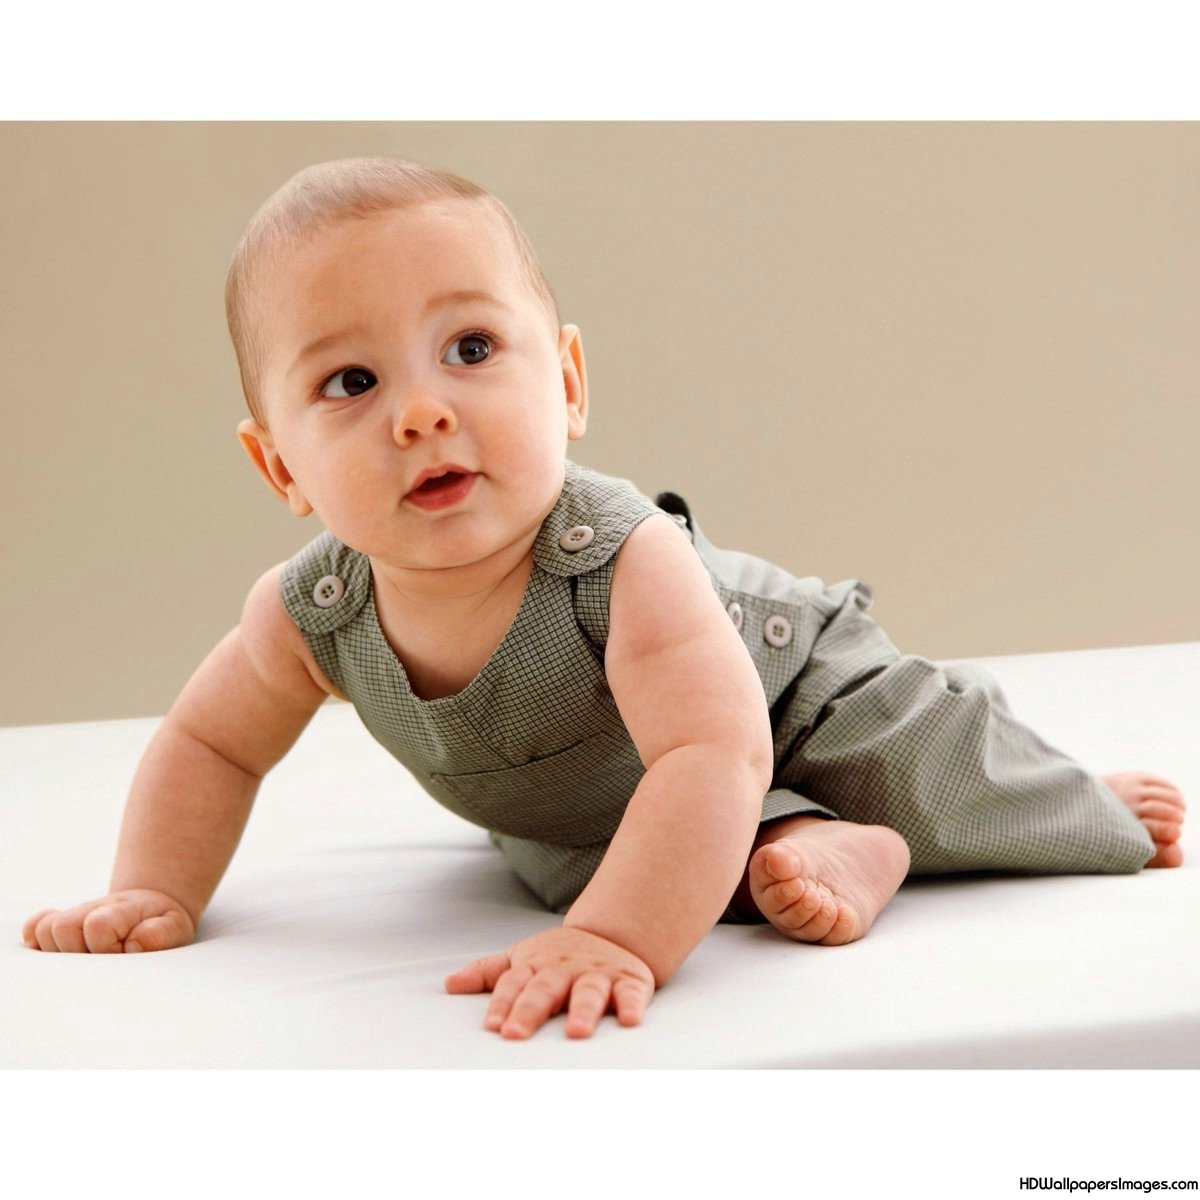 beautiful baby girl wallpaper pictures most cute baby girl in the